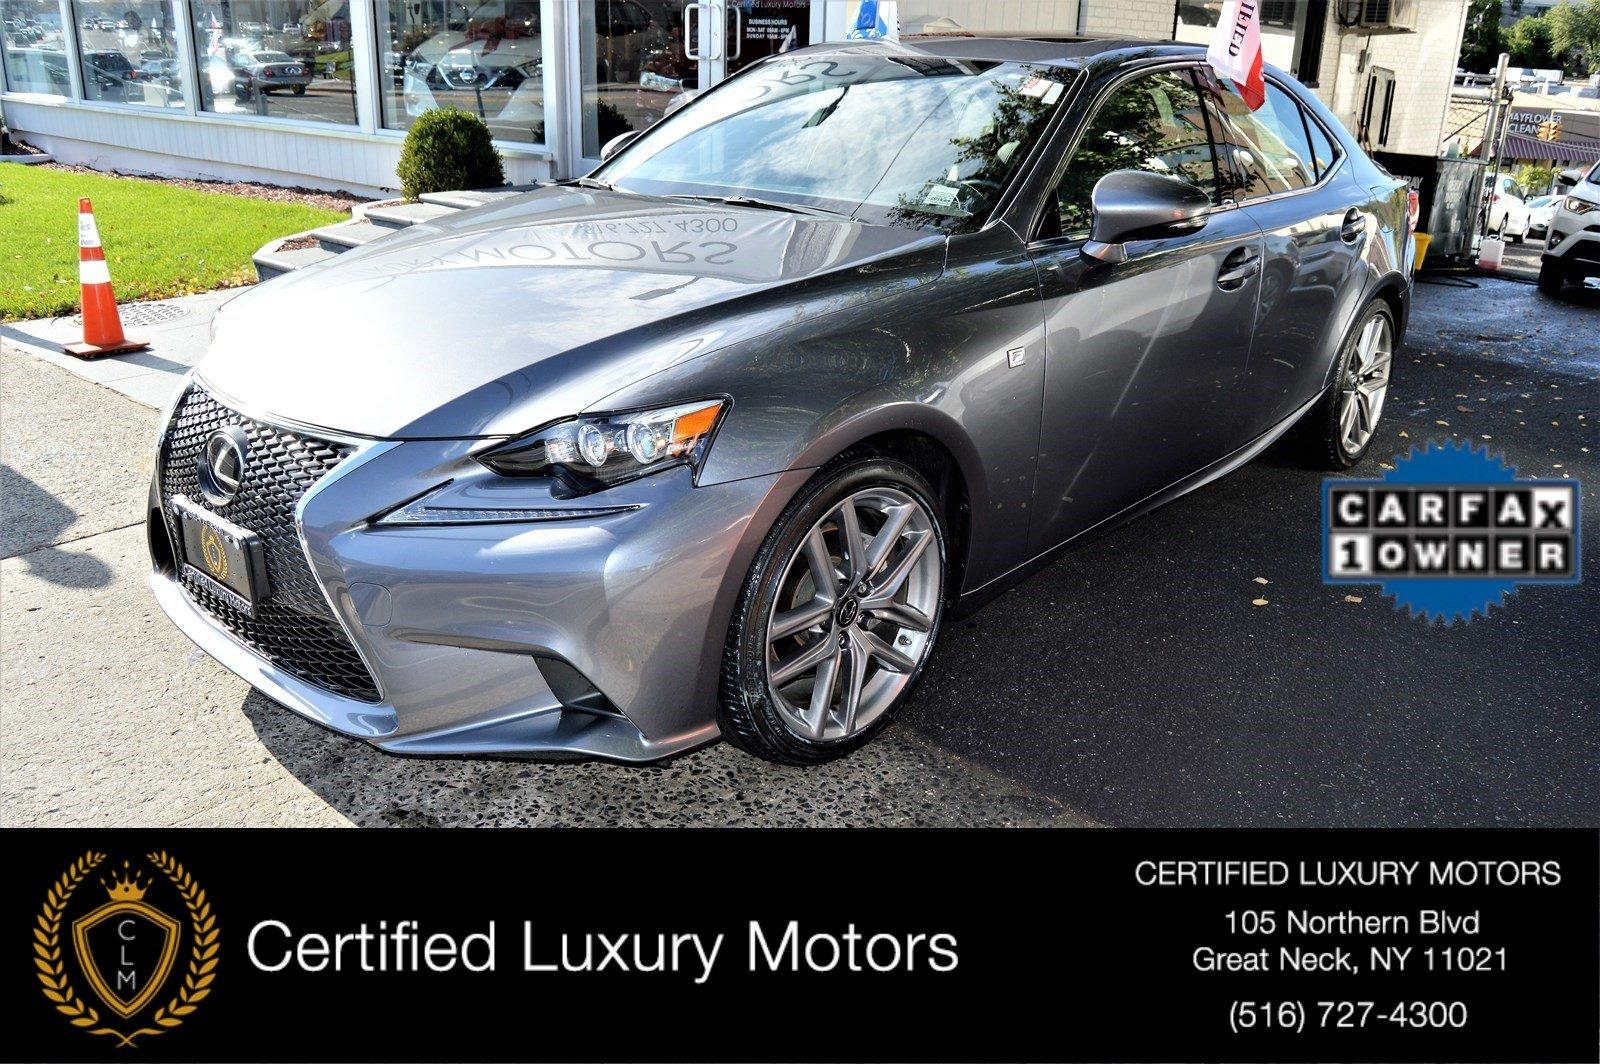 2015 Lexus Is 250 For Sale >> 2015 Lexus IS 250 AWD F-SPORT Stock # 9006 for sale near Great Neck, NY | NY Lexus Dealer